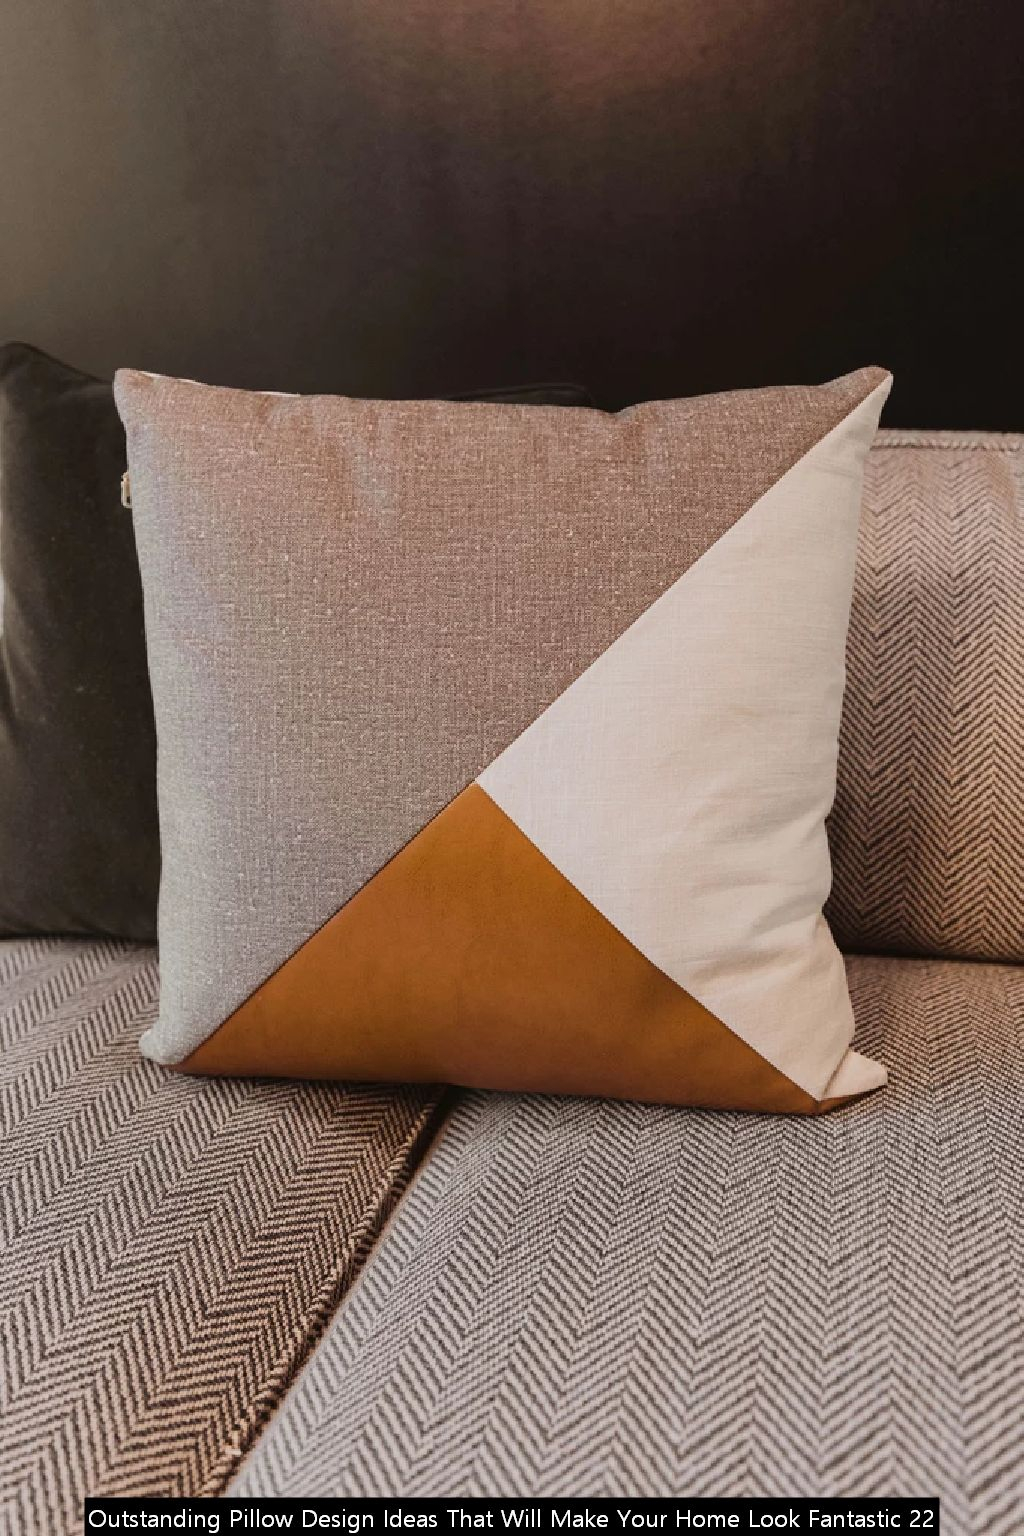 Outstanding Pillow Design Ideas That Will Make Your Home Look Fantastic 22